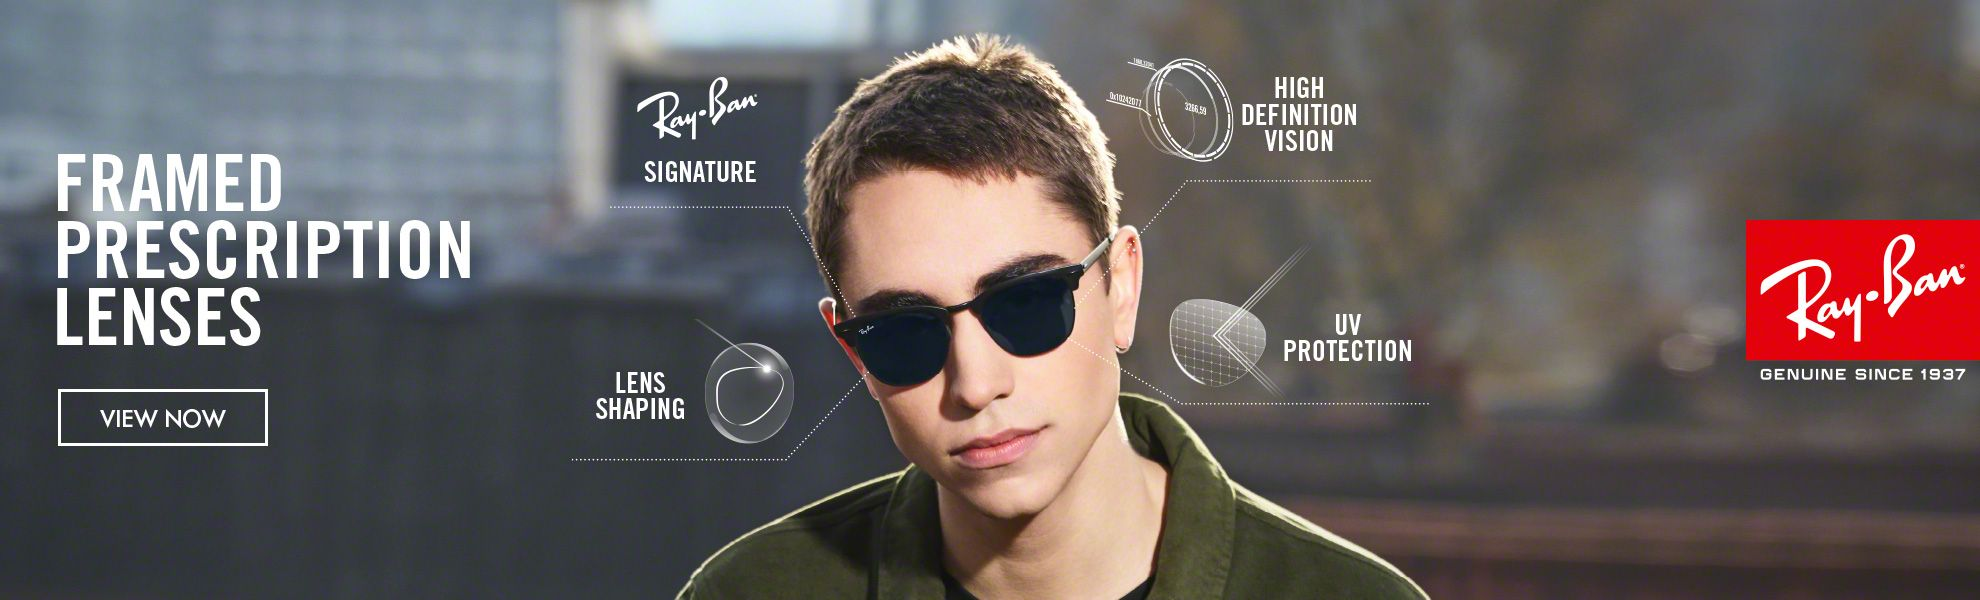 View now Ray Ban collection